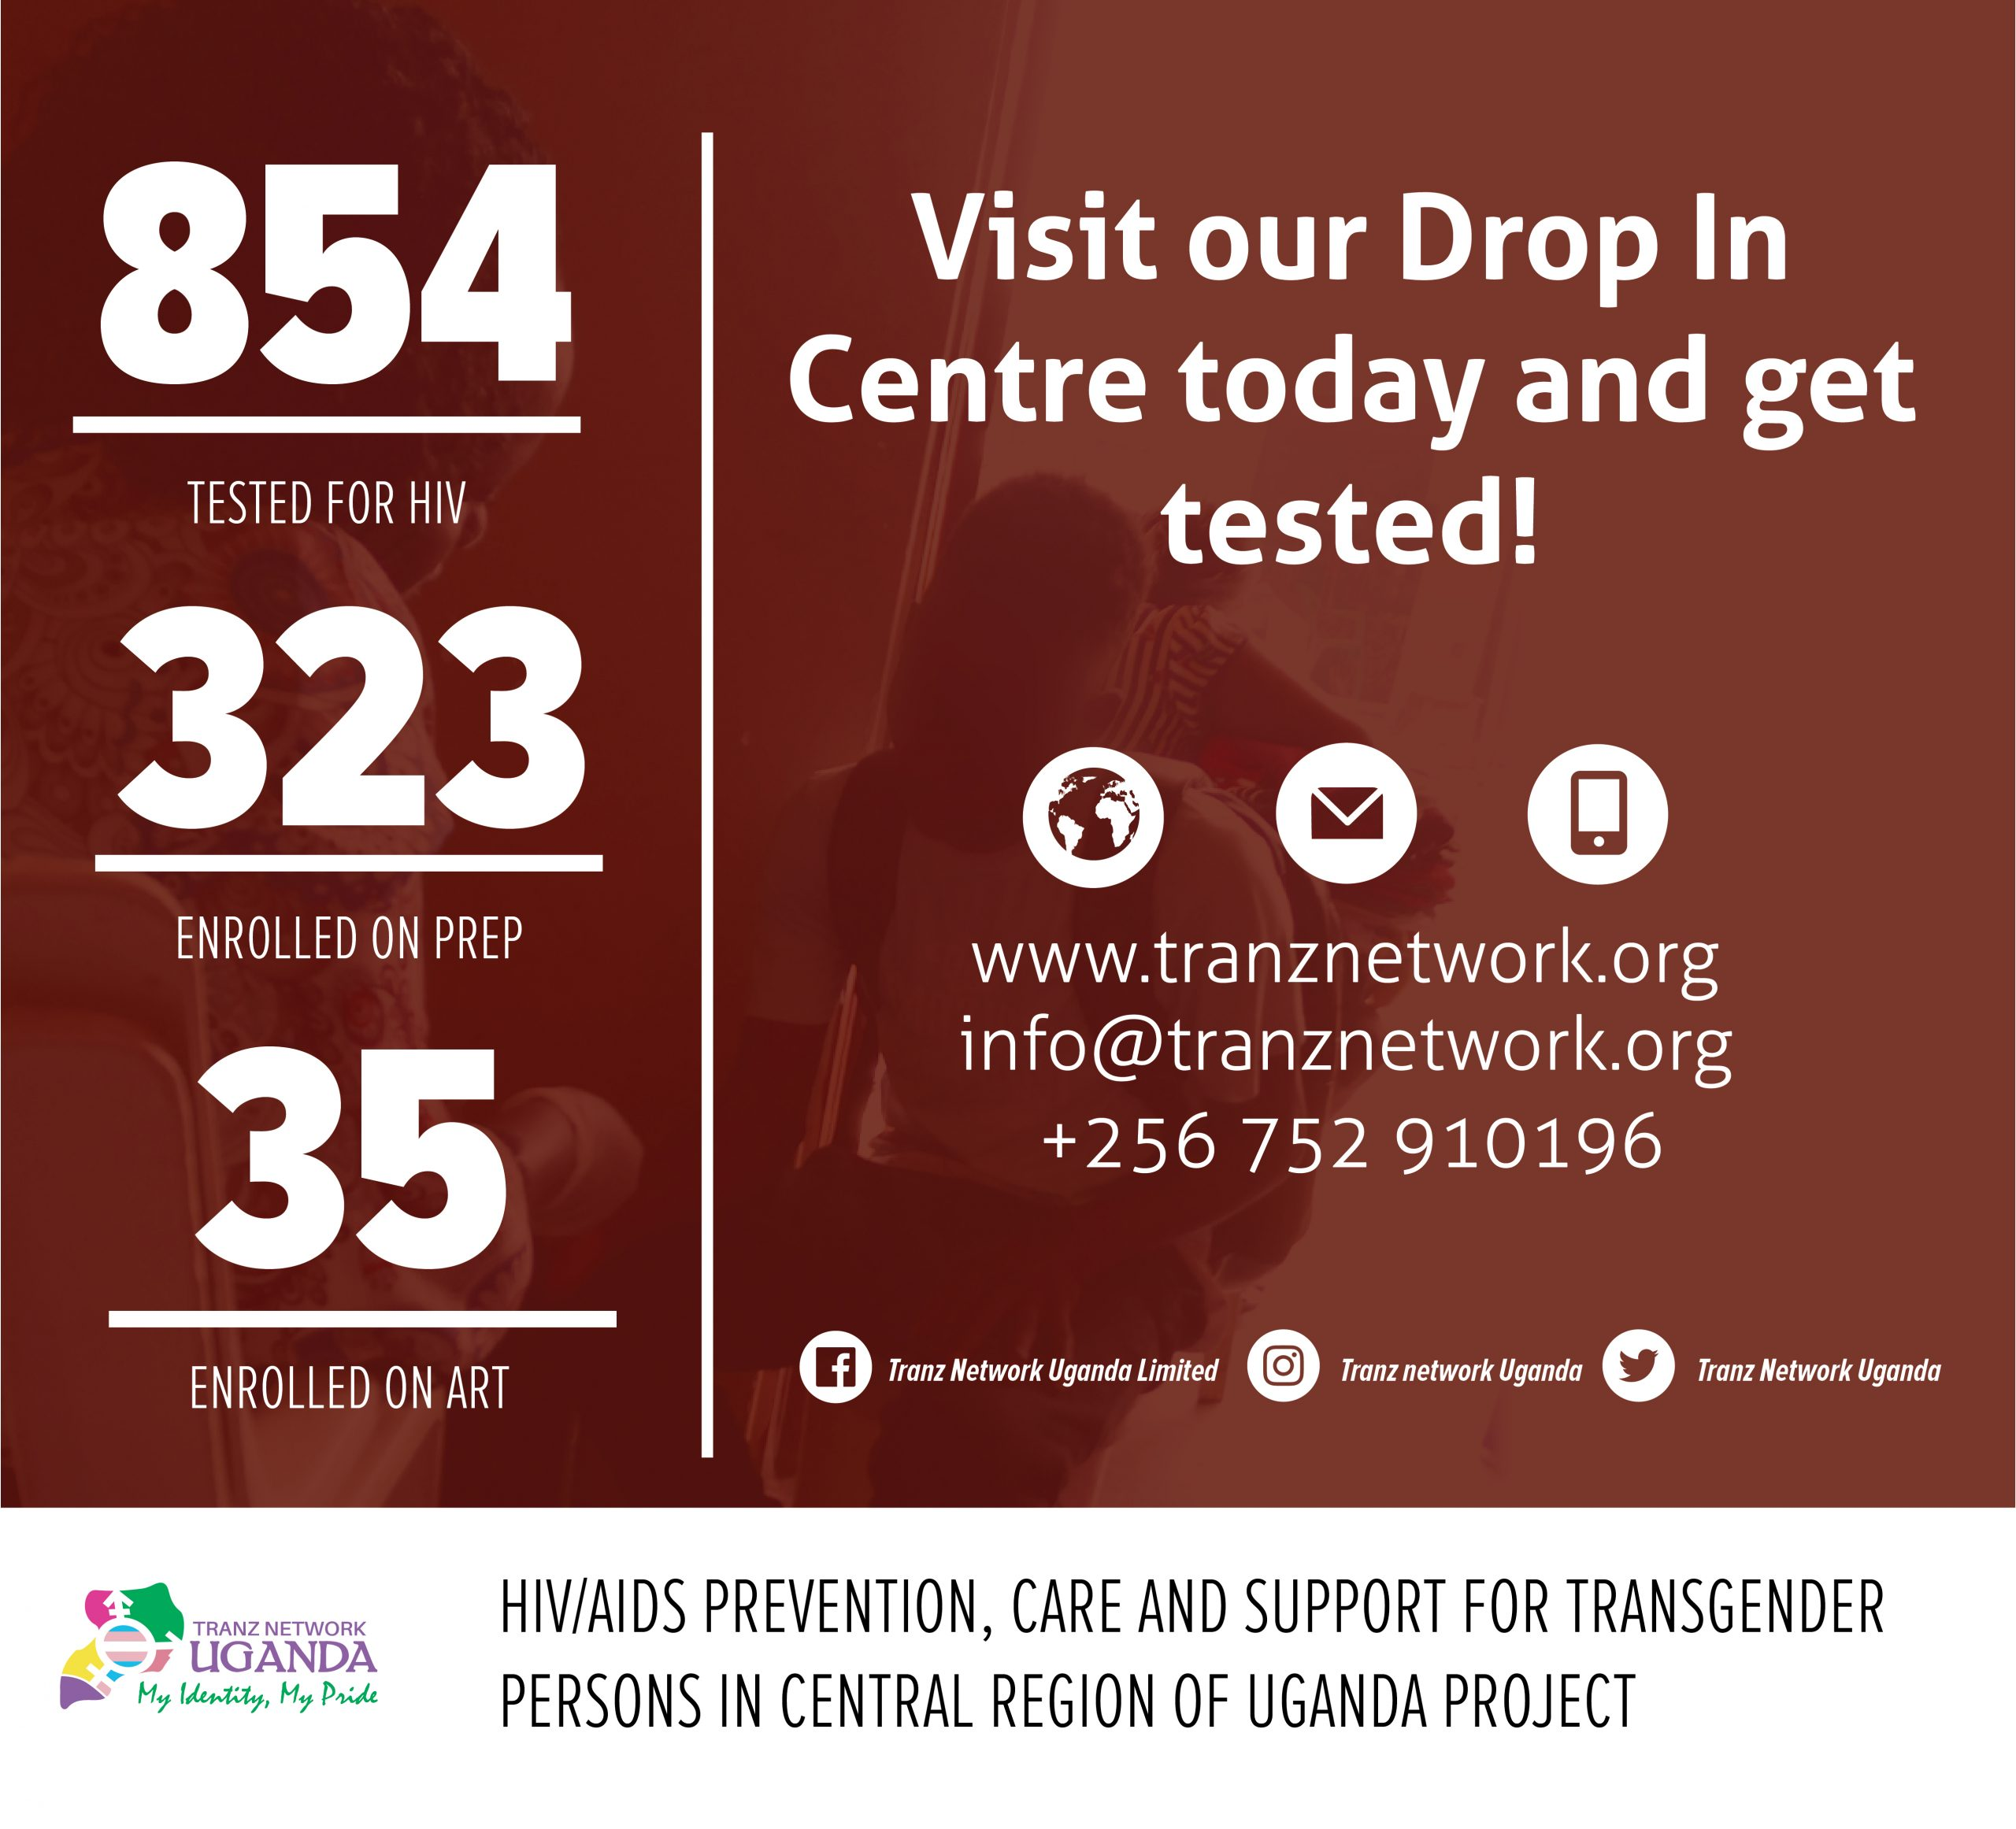 """""""HIV/AIDS PREVENTION, CARE AND SUPPORT FOR TRANSGENDER PERSONS IN THE CENTRAL REGION OF UGANDA"""